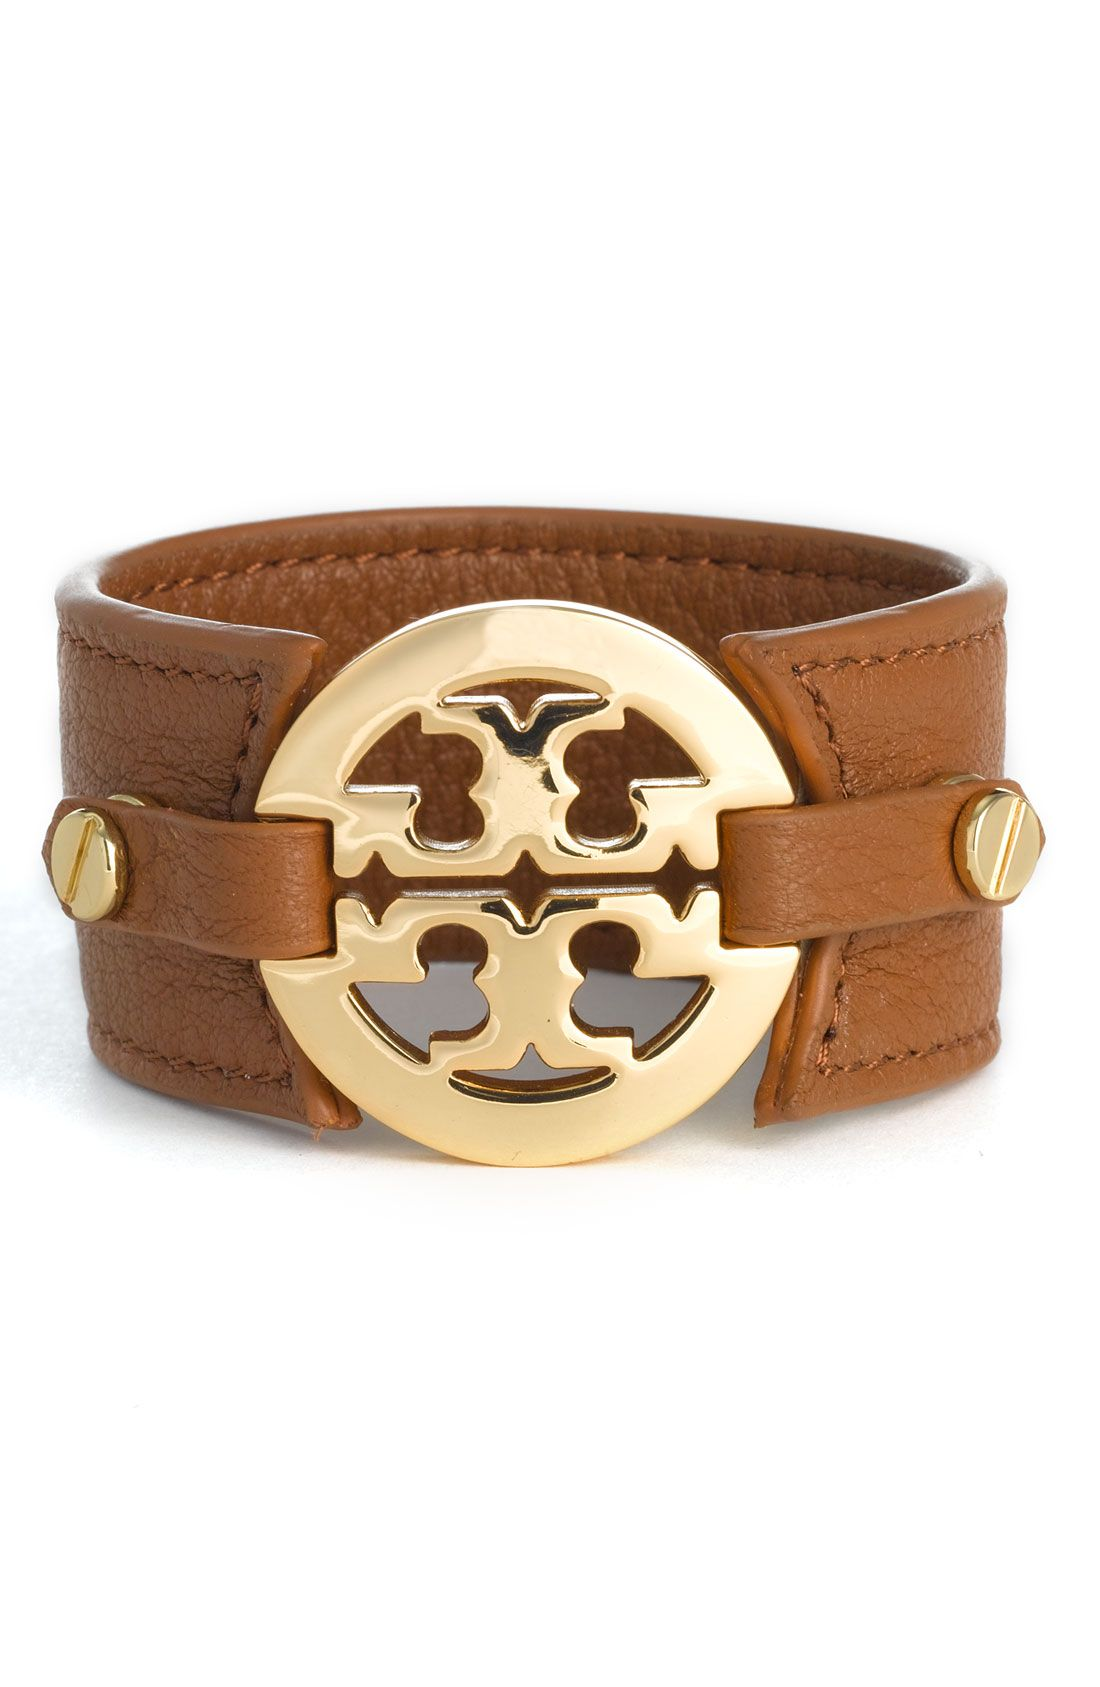 Adding this Tory Burch statement bracelet to the jewelry box Love